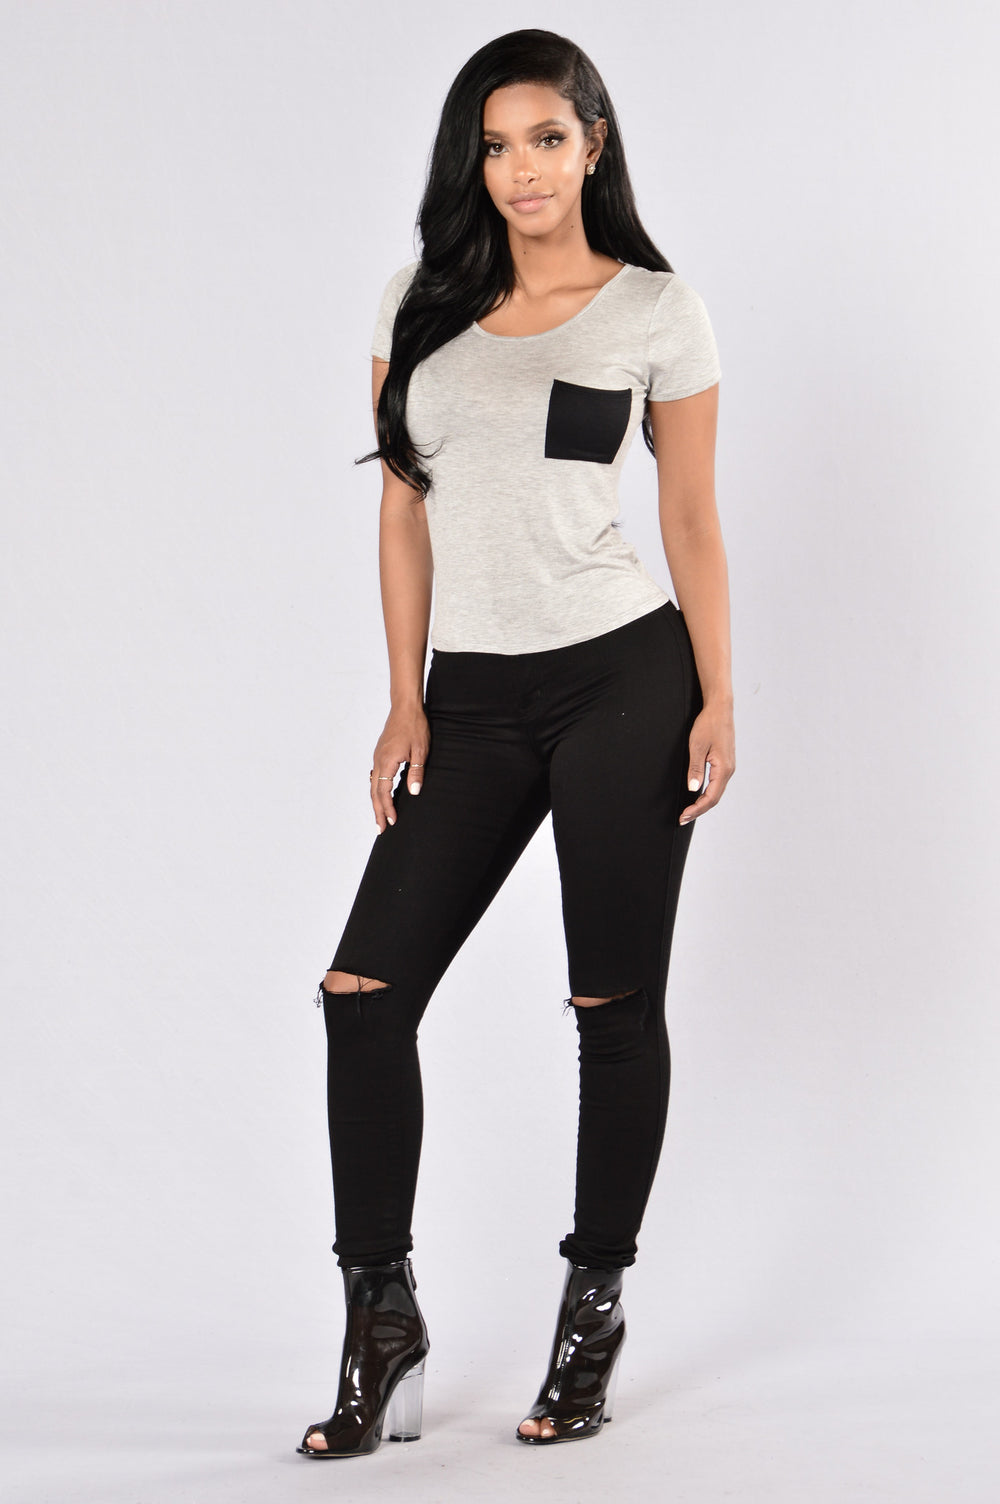 Polly Pocket Crop Tee - Heather Grey/Black